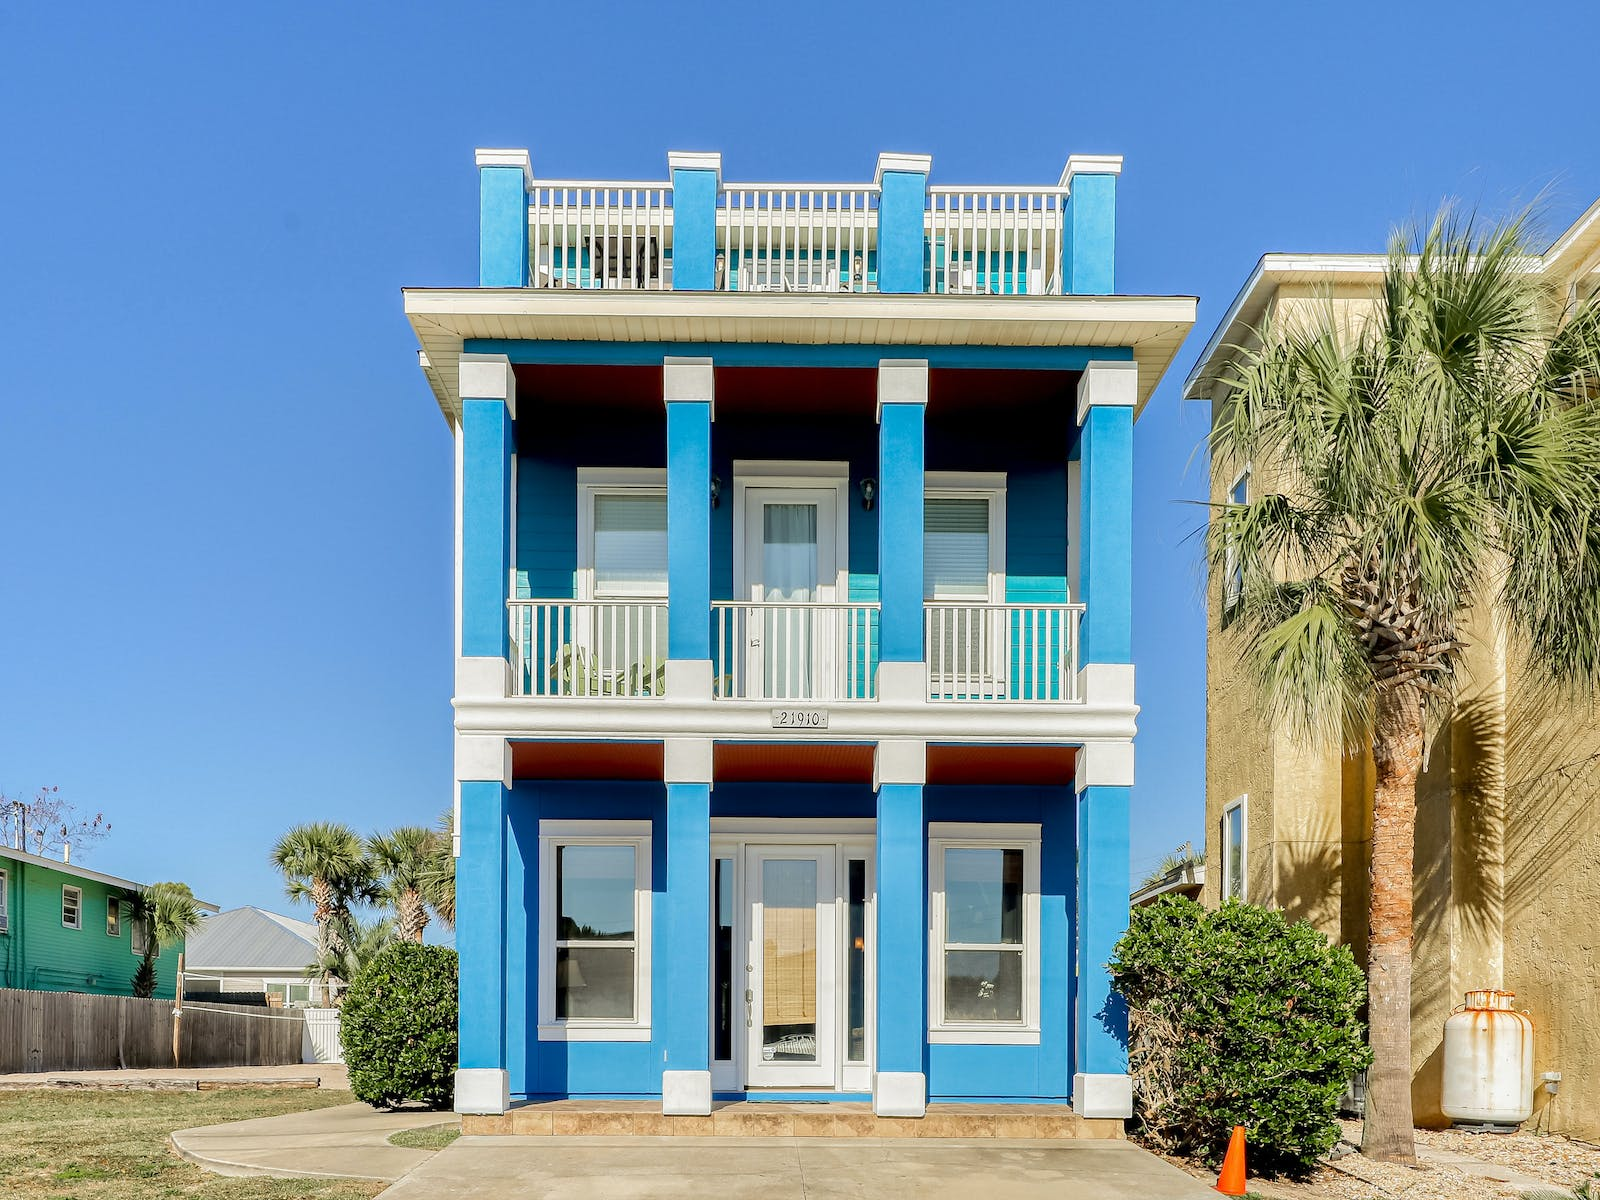 three story blue vacation home in pcb, fl